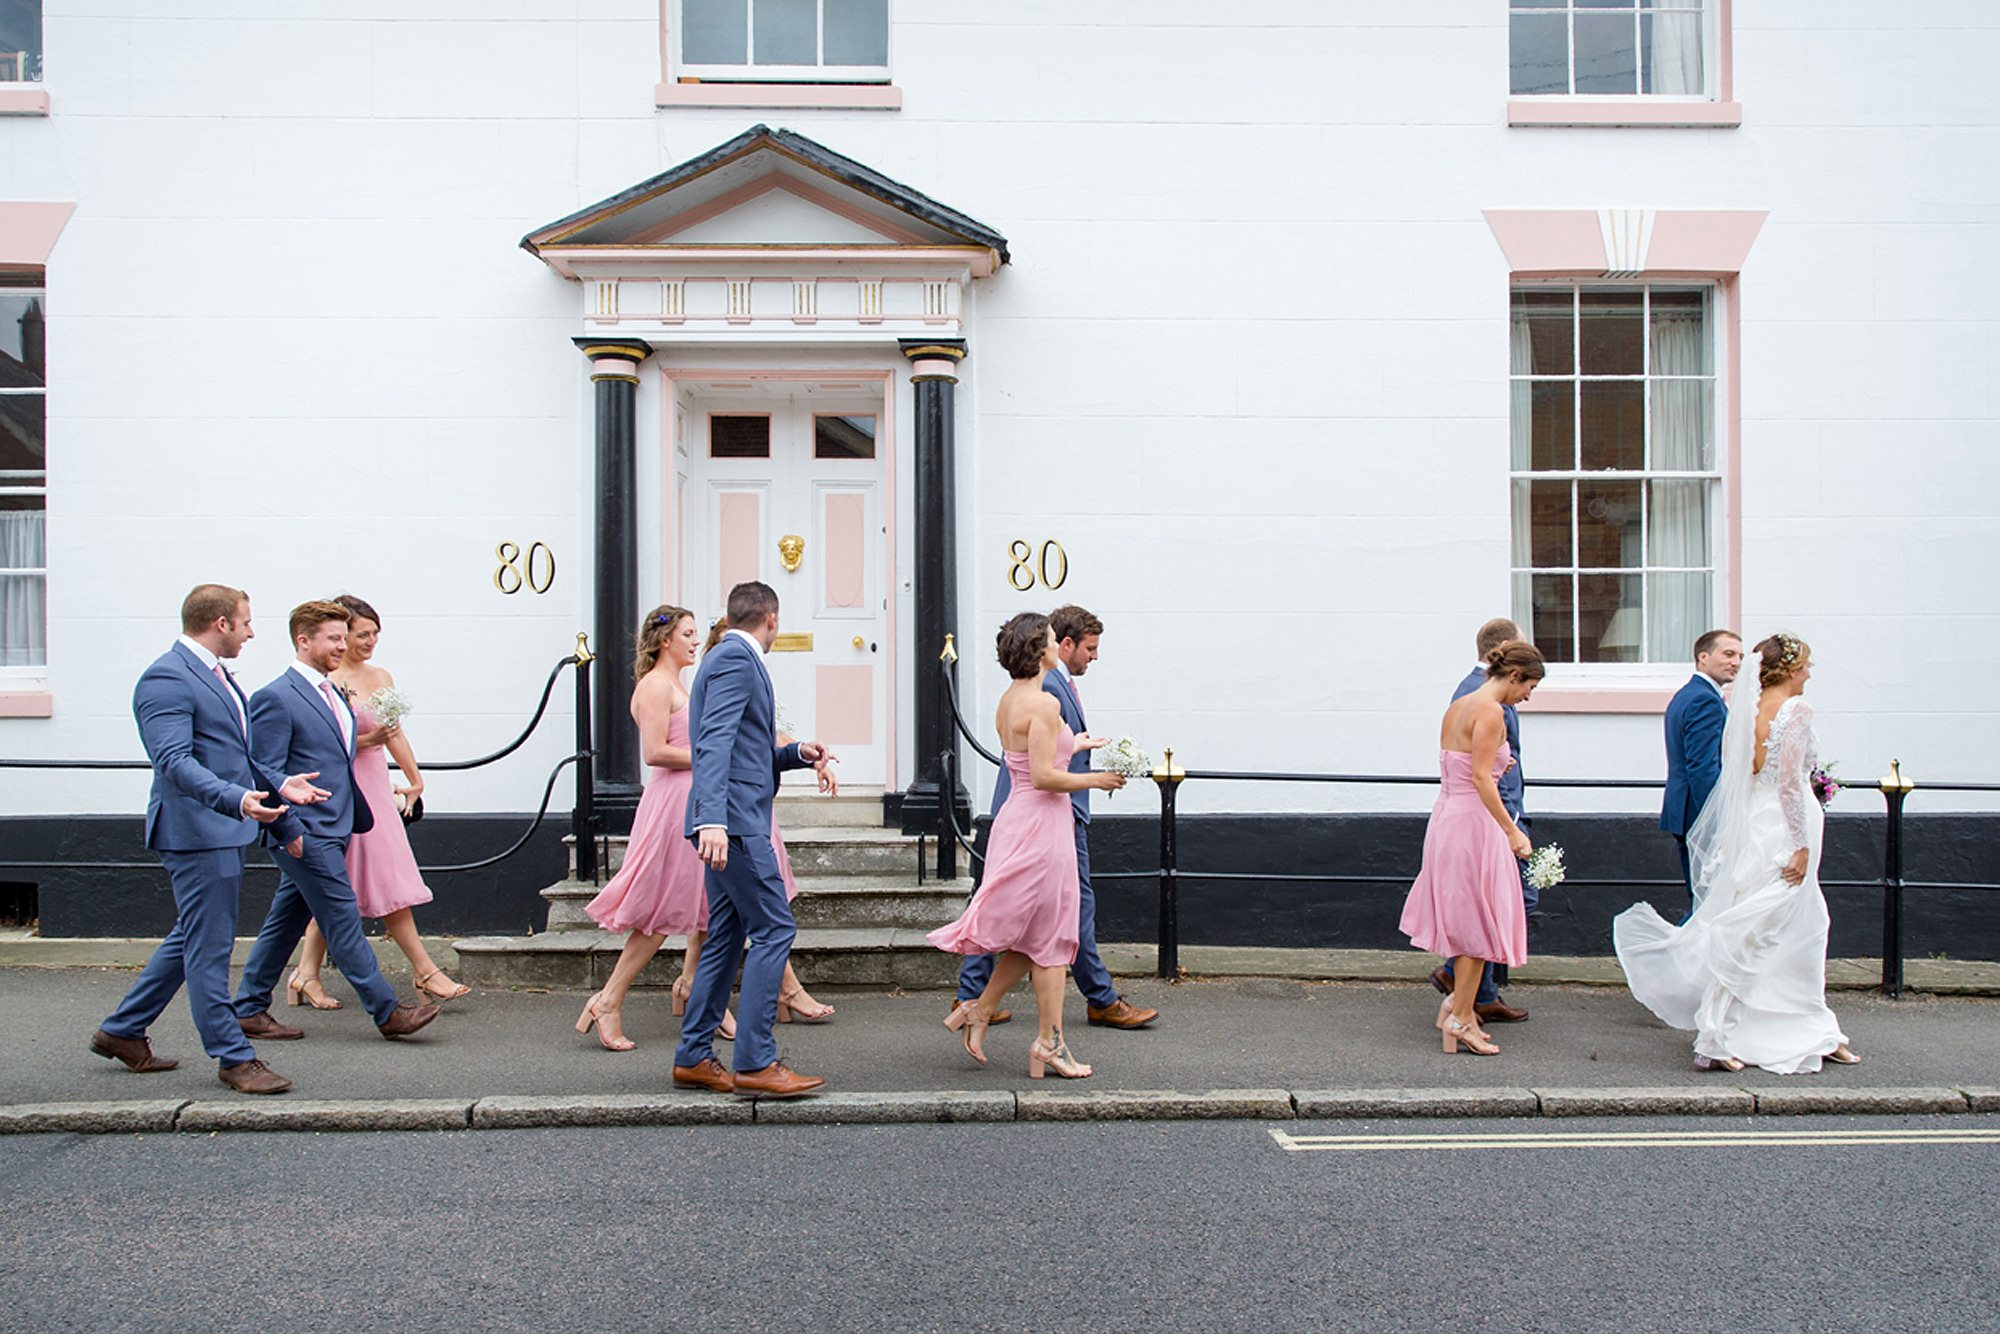 Marks Hall Estate wedding photography bride party walking down street